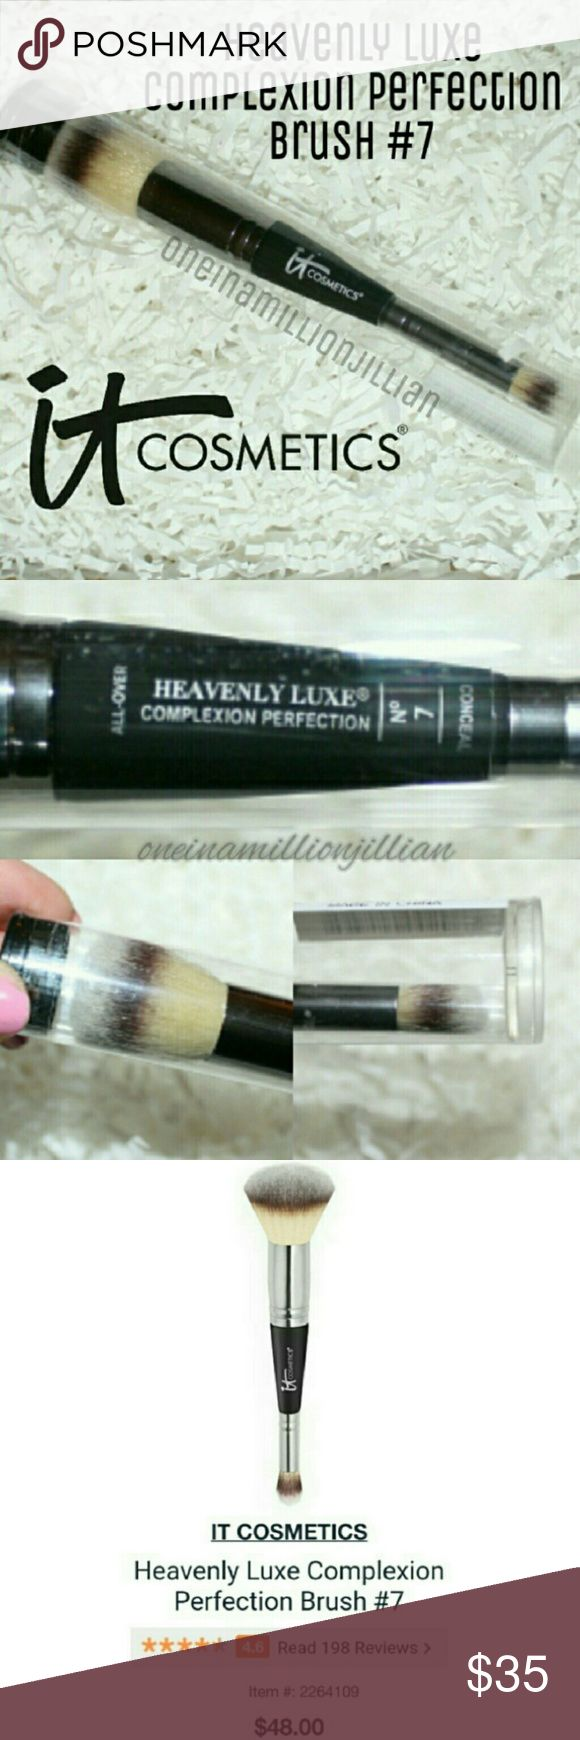 IT Cosmetics Heavenly Luxe Complexion Brush #7 New in Reusable Protective Tube/Sealed  Full Sz & Authentic  The ultra-plush, ultra-luxe large end allows you to quickly apply your foundation to larger areas with a beautiful airbrushed finish, while the micro-end allows for the most accurate precision in even the smallest spaces. Heavenly Luxe Dual Airbrush Foundation/Concealer Brush is a 100% cruelty-free, high-quality brush & is extremely soft & great for even the most sensitive skin!  Check…